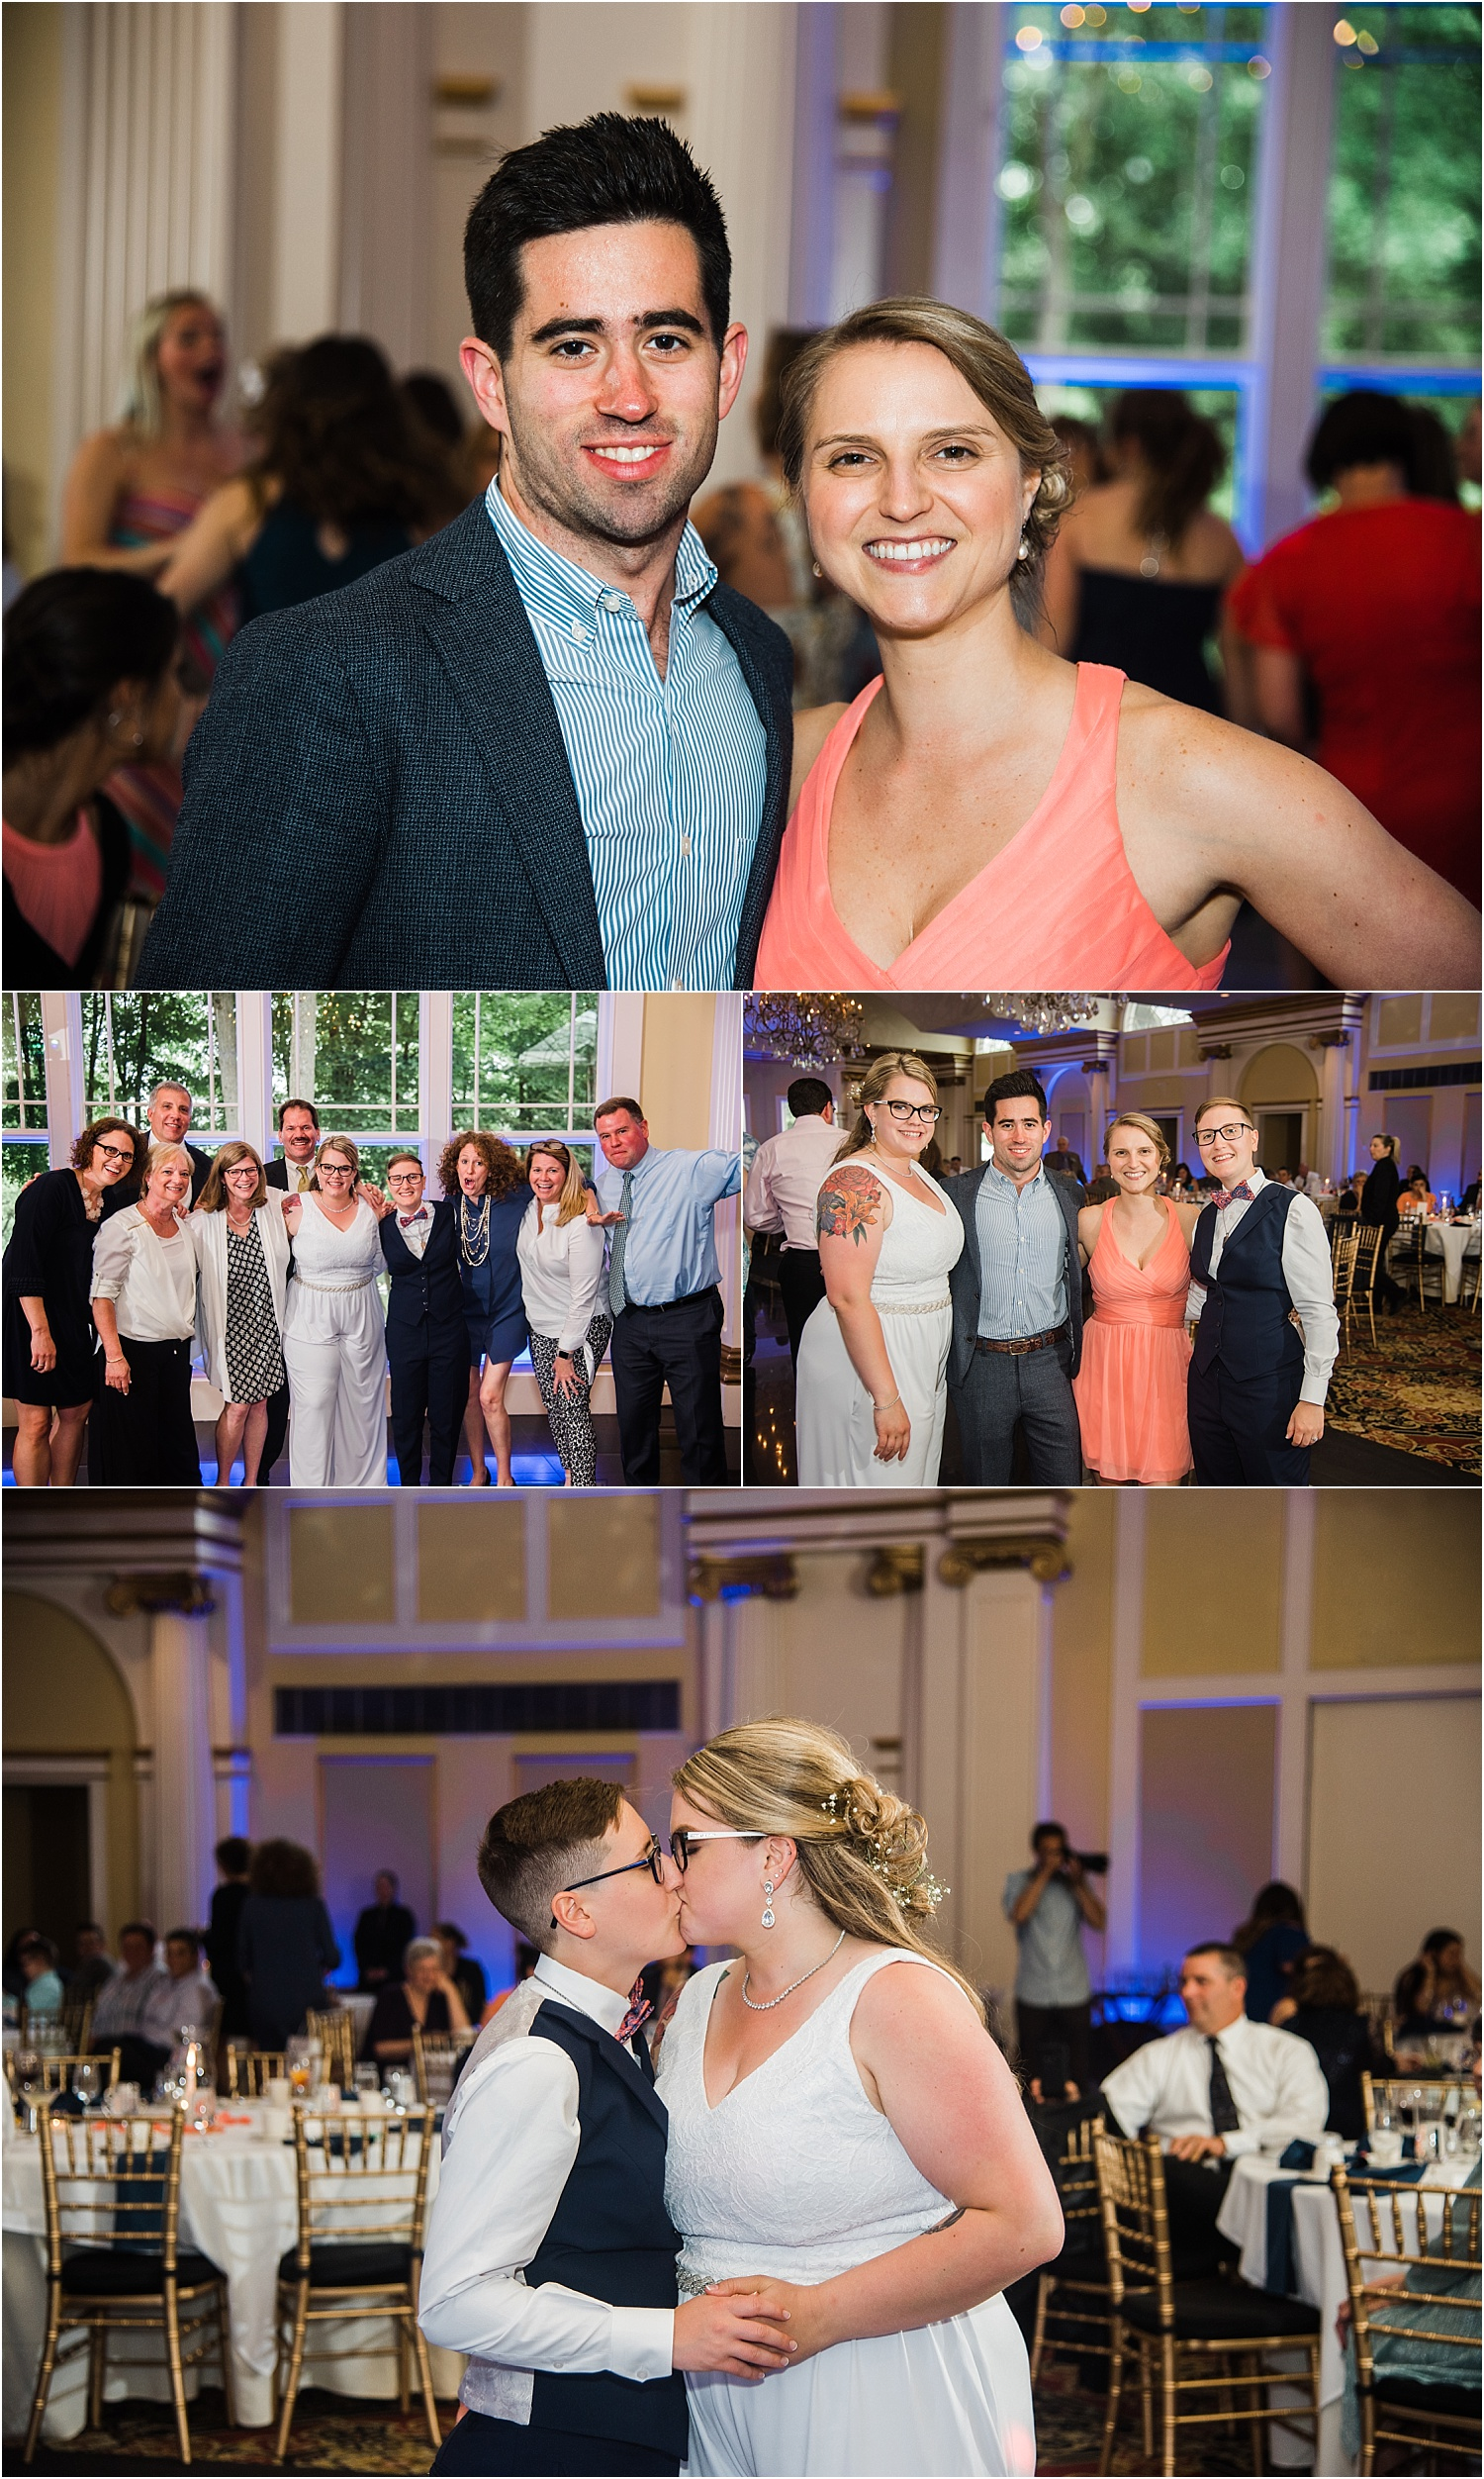 The_Riverview_Simsbury_Connecticut_Wedding_LGBT_Weddings_084.jpg